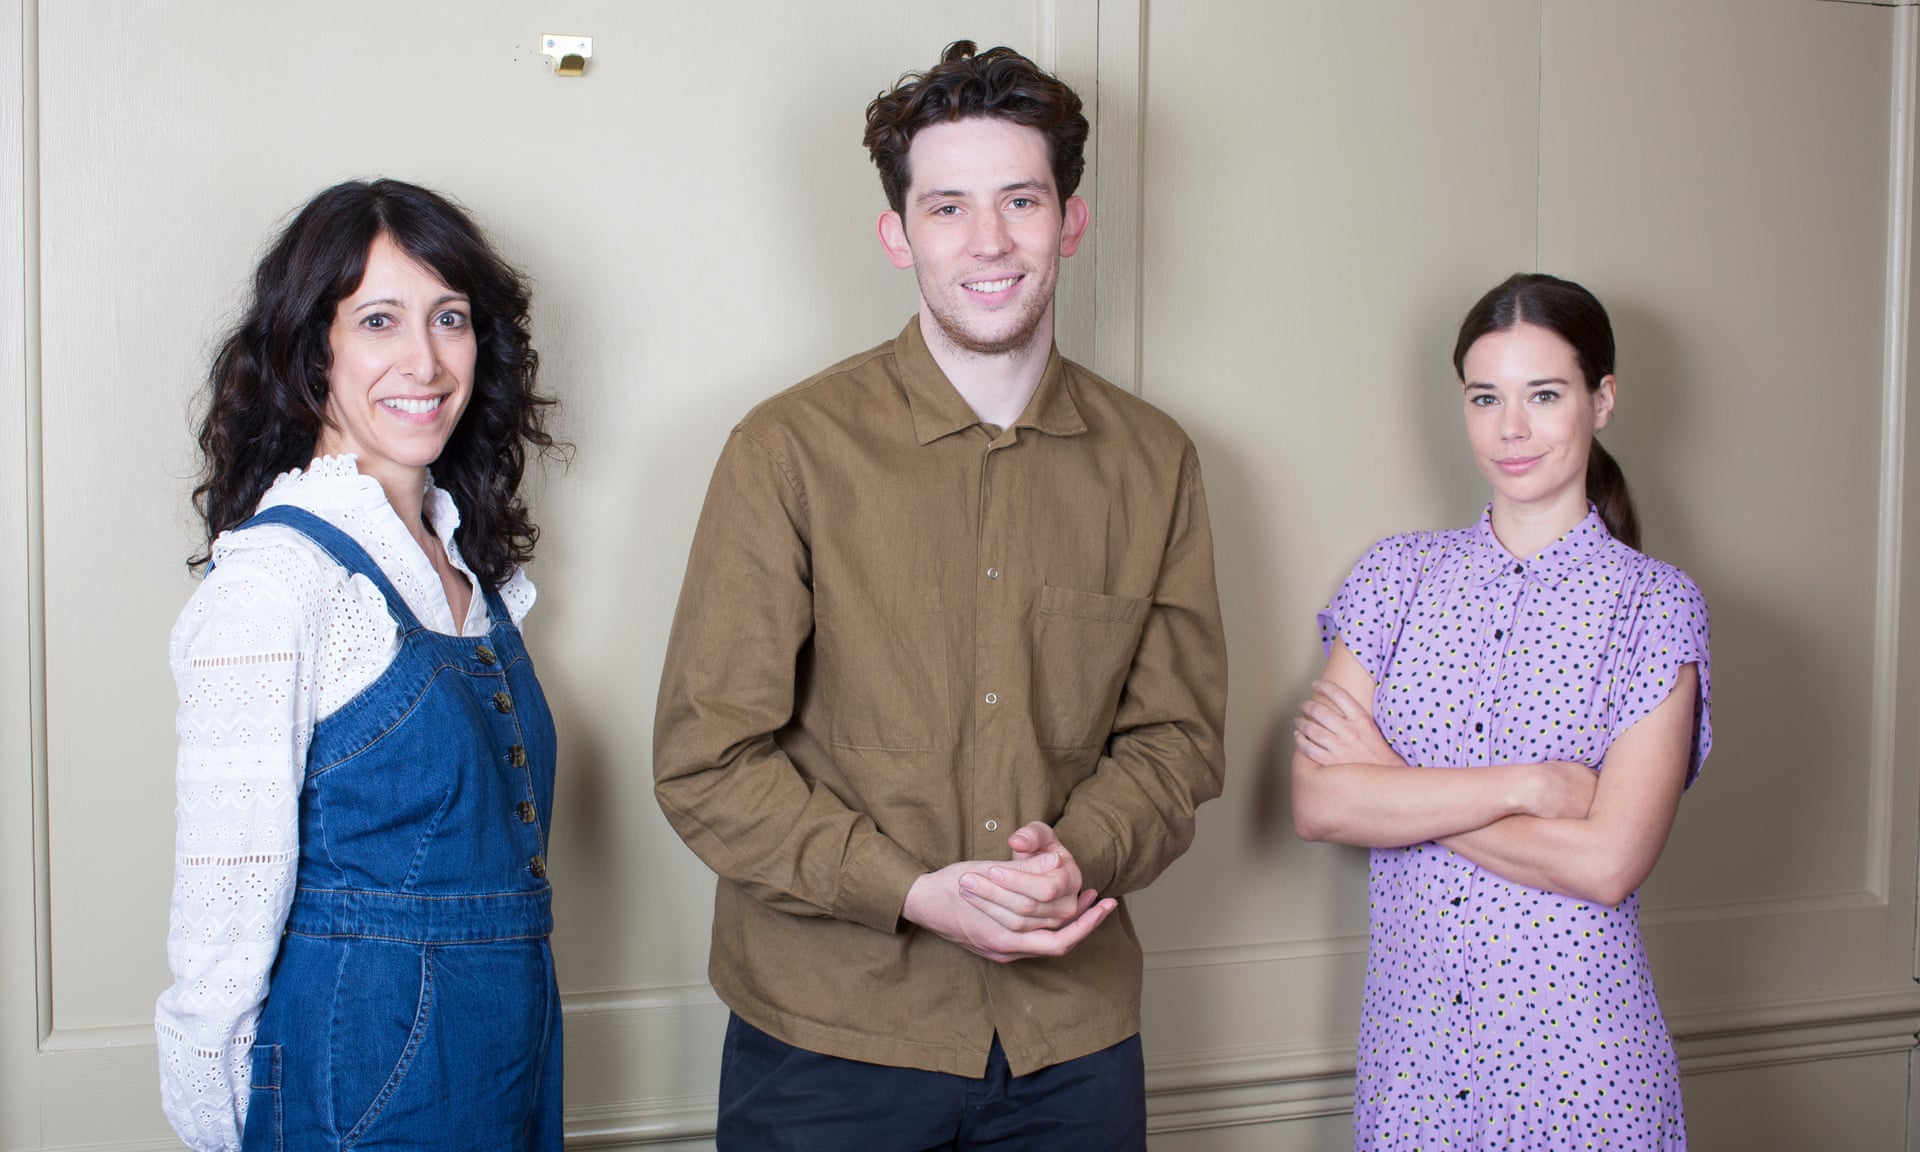 Josh O'Connor: 'This film is as important as I, Daniel Blake' - The actors discuss the unflinching infertility drama with its director Harry Wootliff. Catherine Shoard, The Guardian